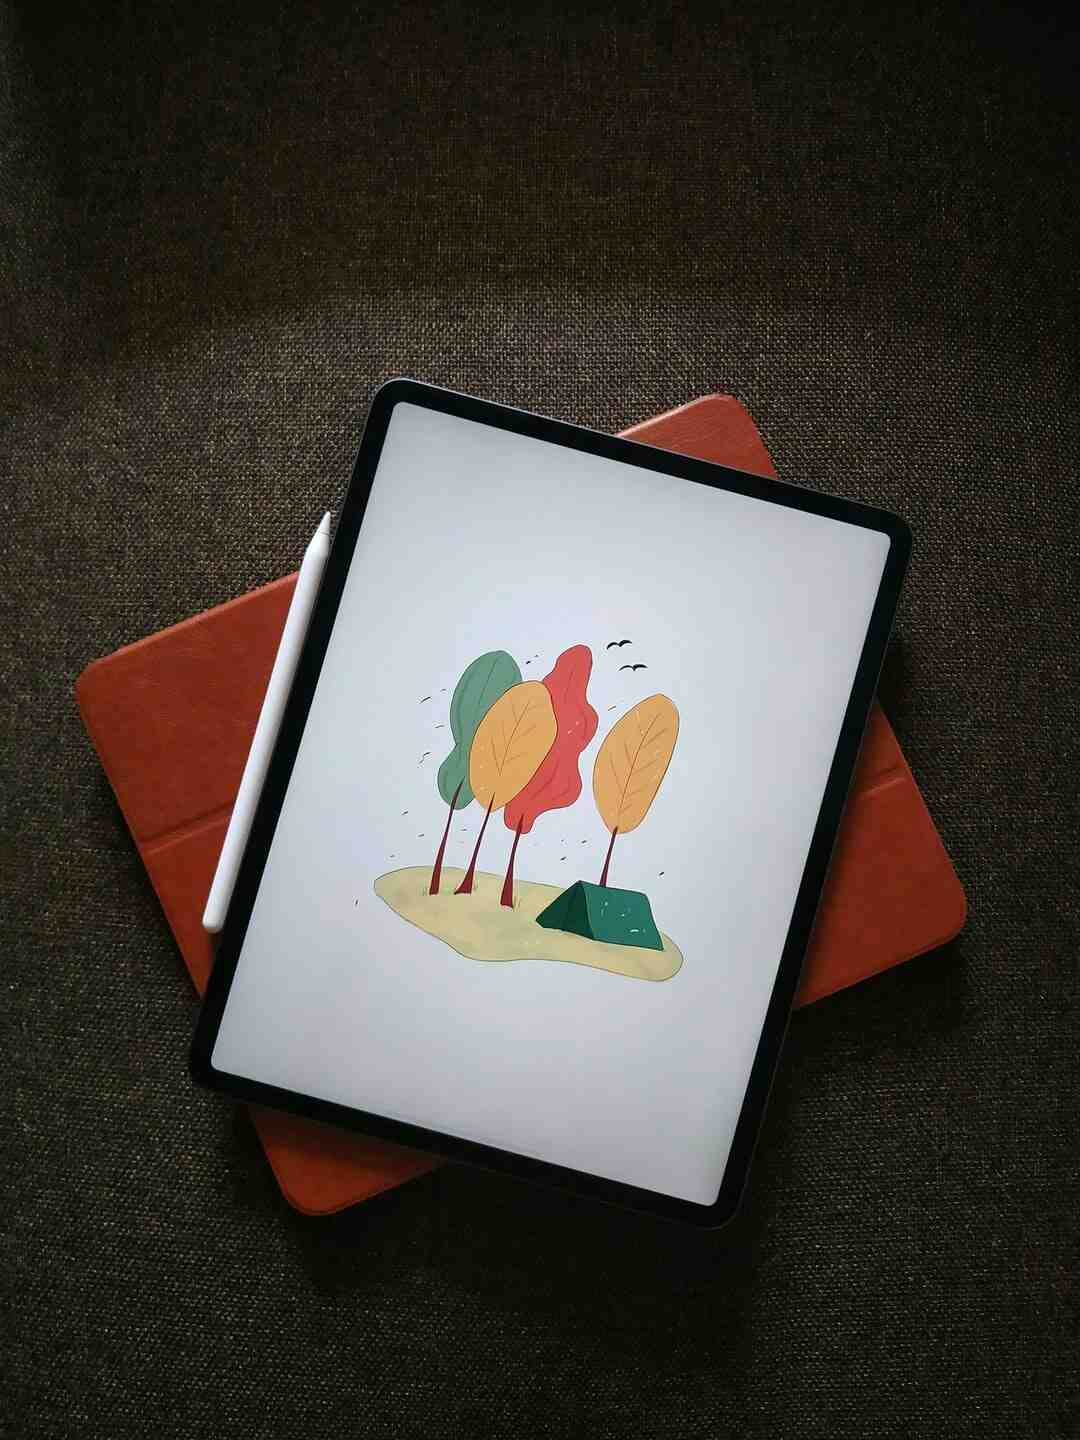 How to use the ipad pro